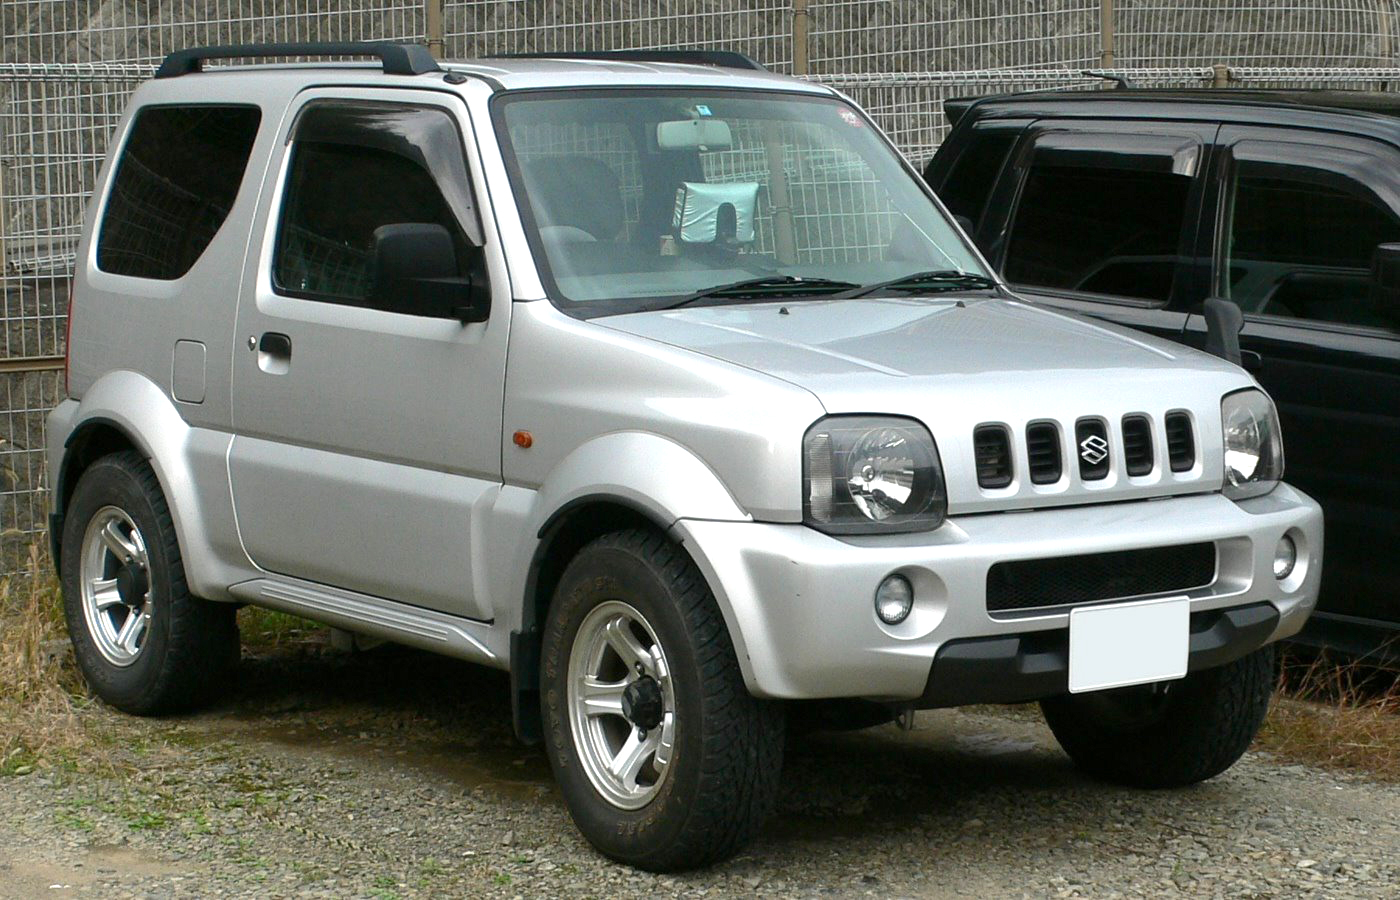 suzuki jimny tractor construction plant wiki fandom powered by wikia. Black Bedroom Furniture Sets. Home Design Ideas